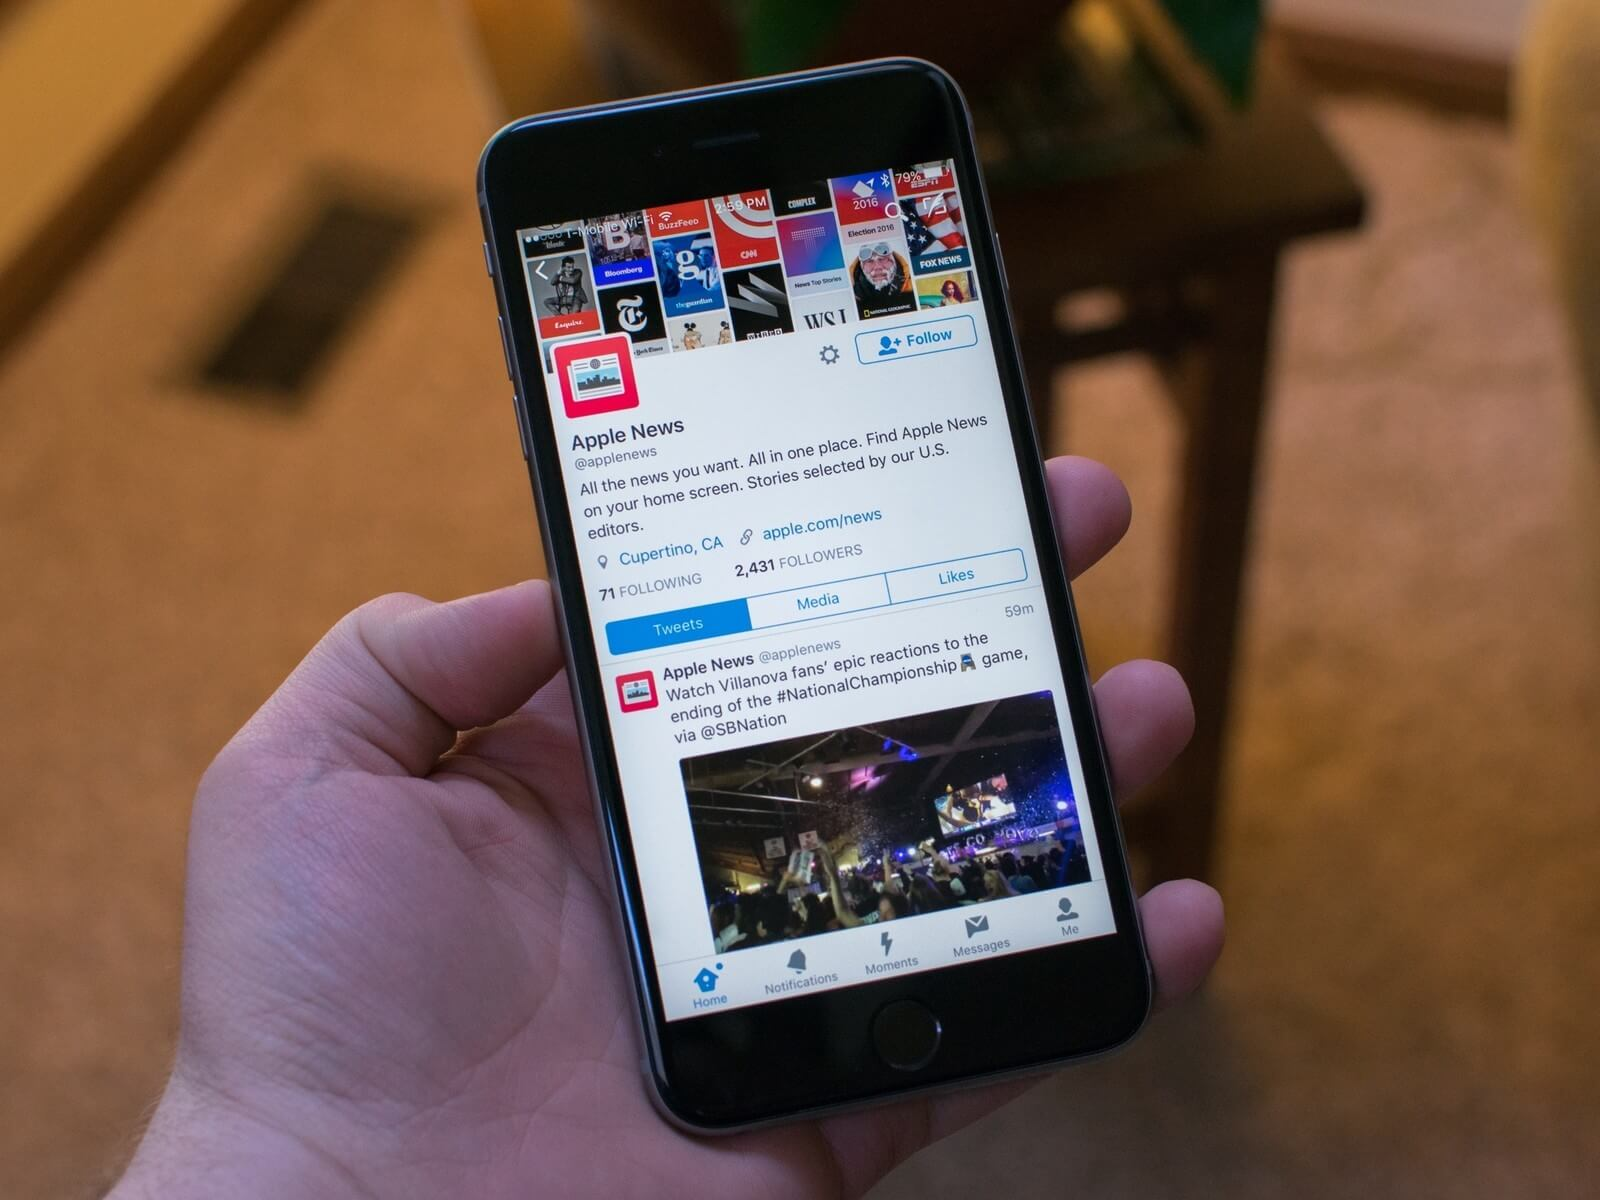 Pew Research: People prefer social media over print newspapers for news consumption